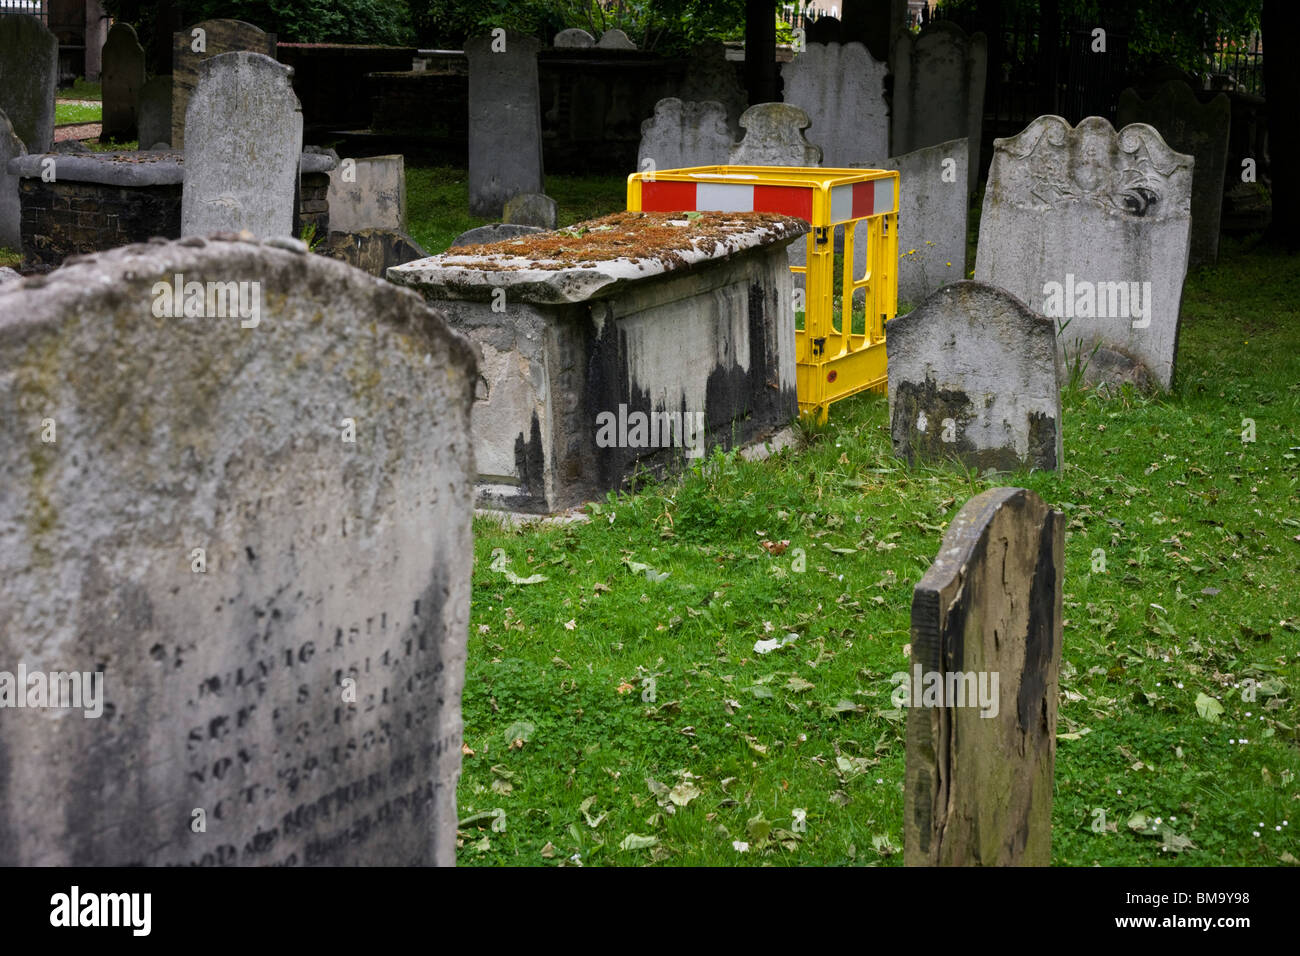 Construction fencing among the historical Victorian headstones of Bunhill Fields cemetery in the City of London. Stock Photo